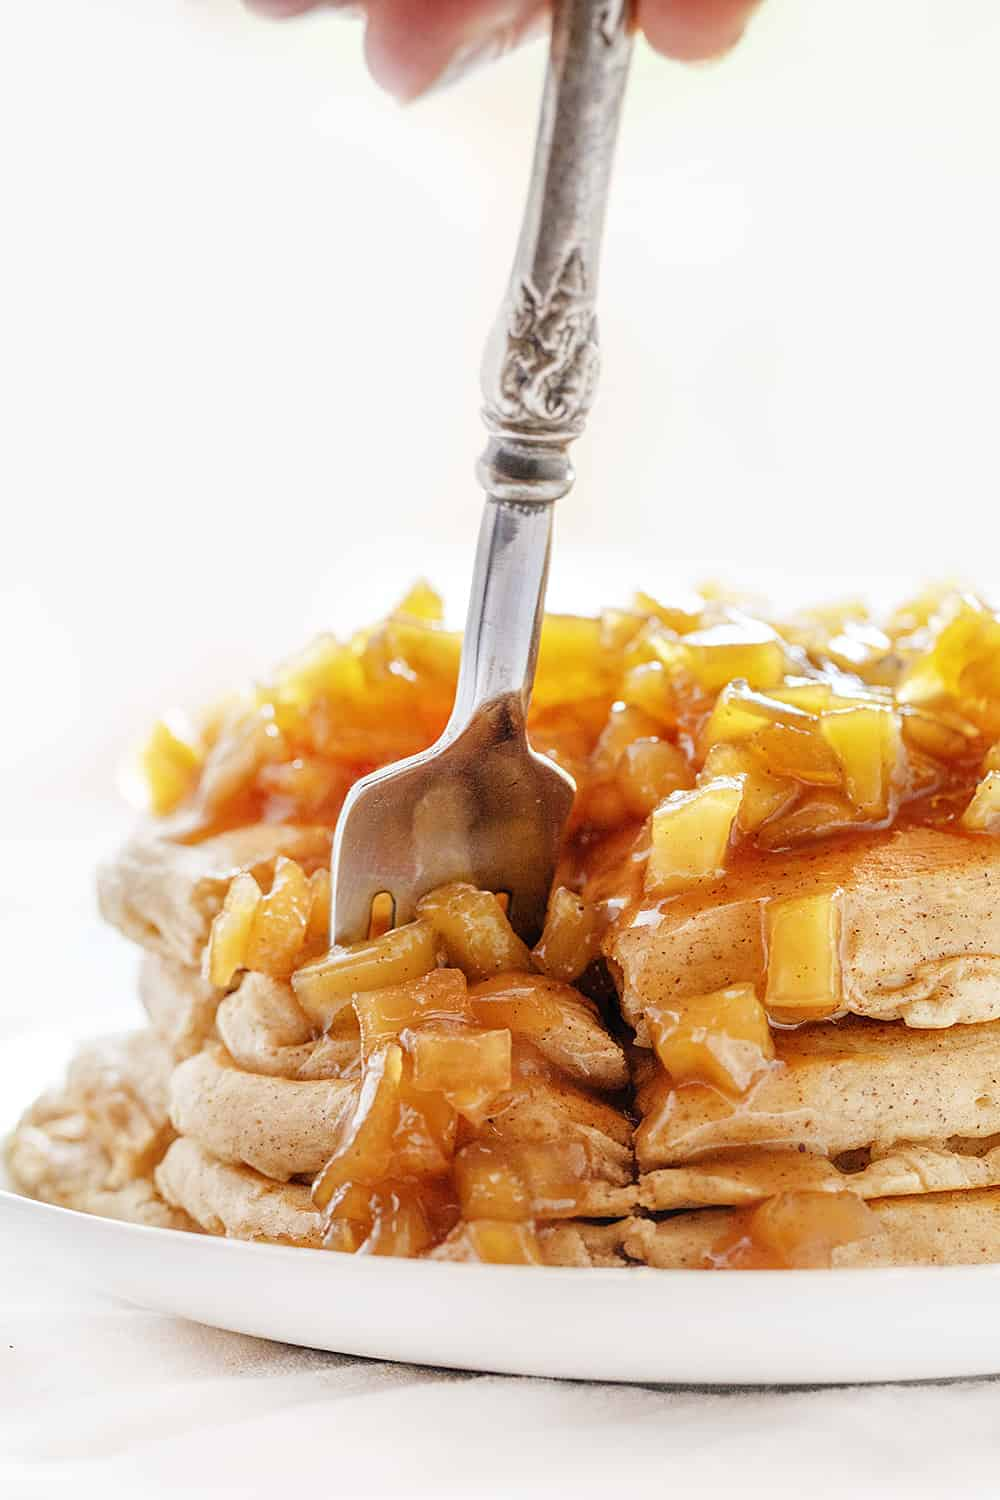 Forkful of Spiced Apple Pancakes